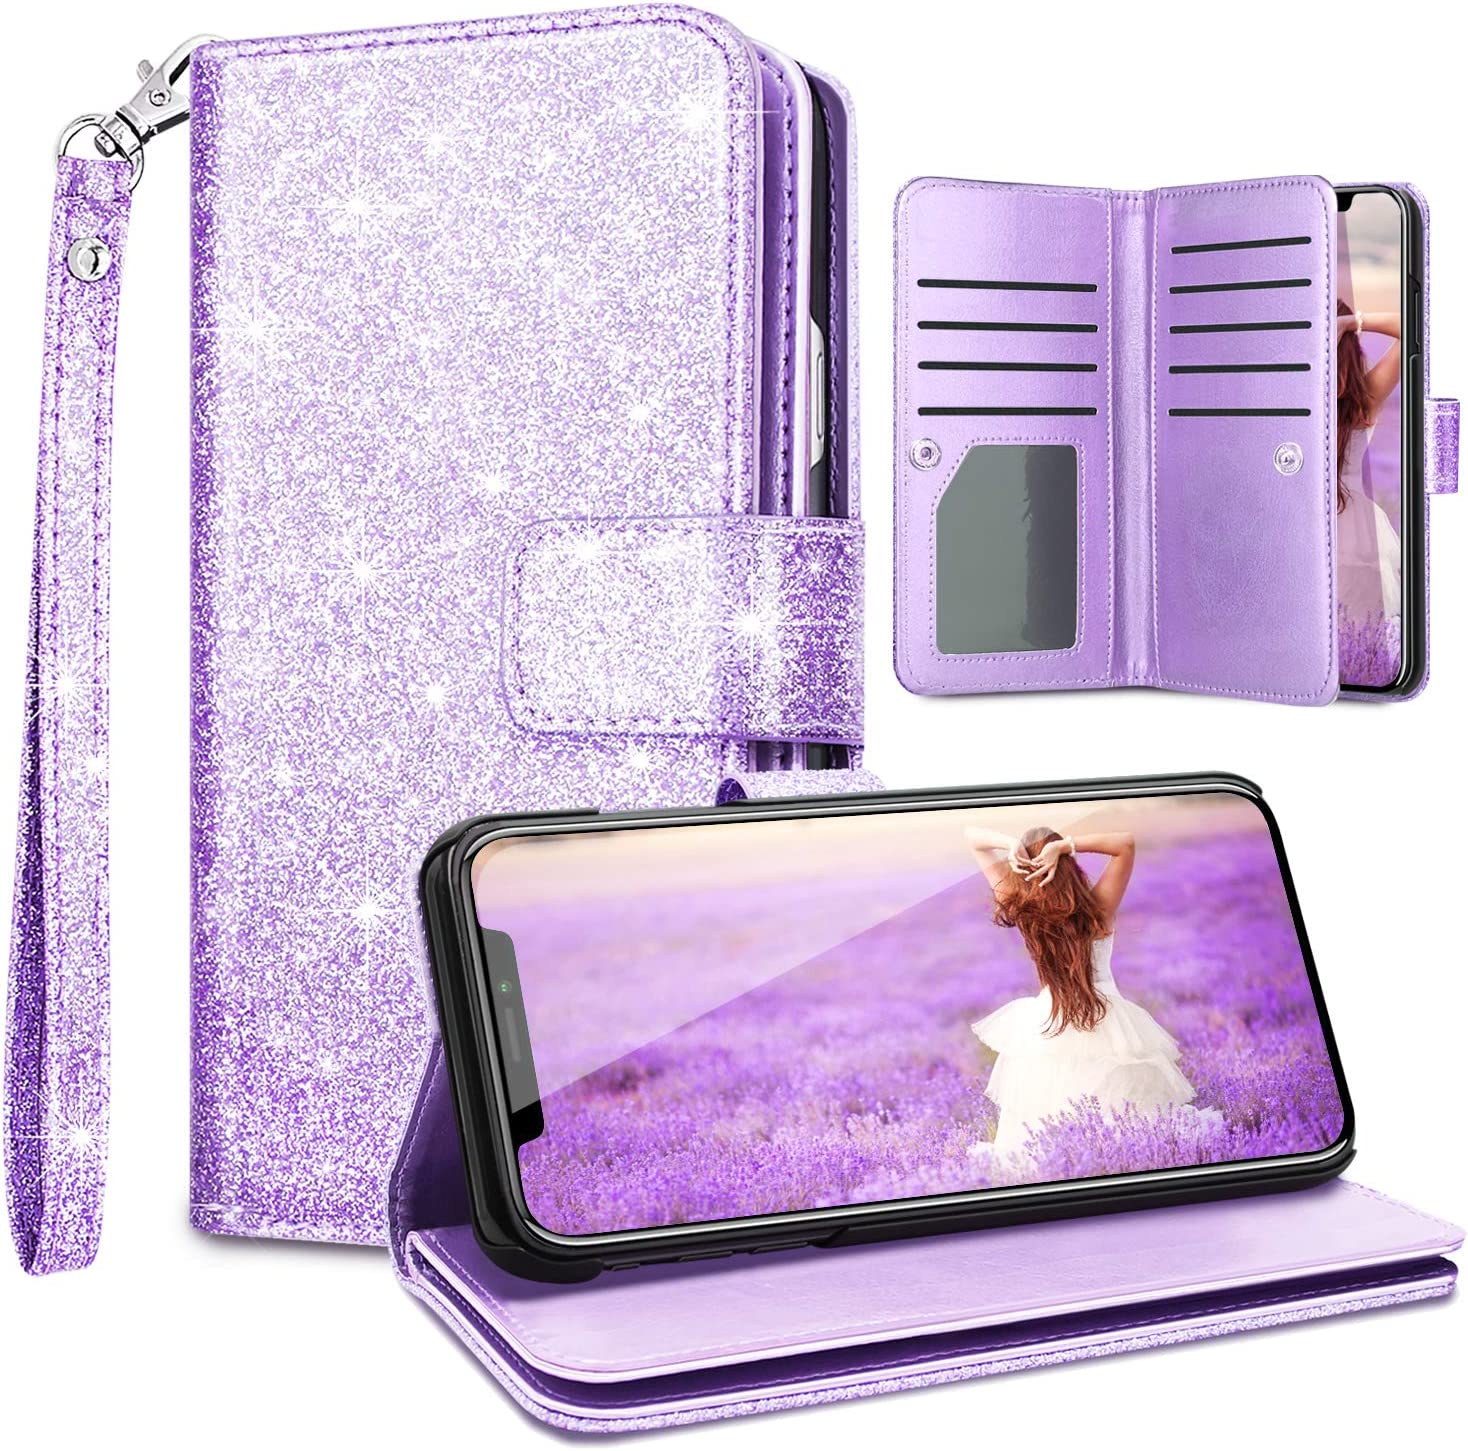 Fingic Cover for iPhone XR,iPhone XR Wallet Case,Glitter Sparkle Cover 9 Card Holder PU Leather Detachable Wrist Strap Wallet Case for Women Cover for Apple iPhone XR/iPhone XR 2018 6.1